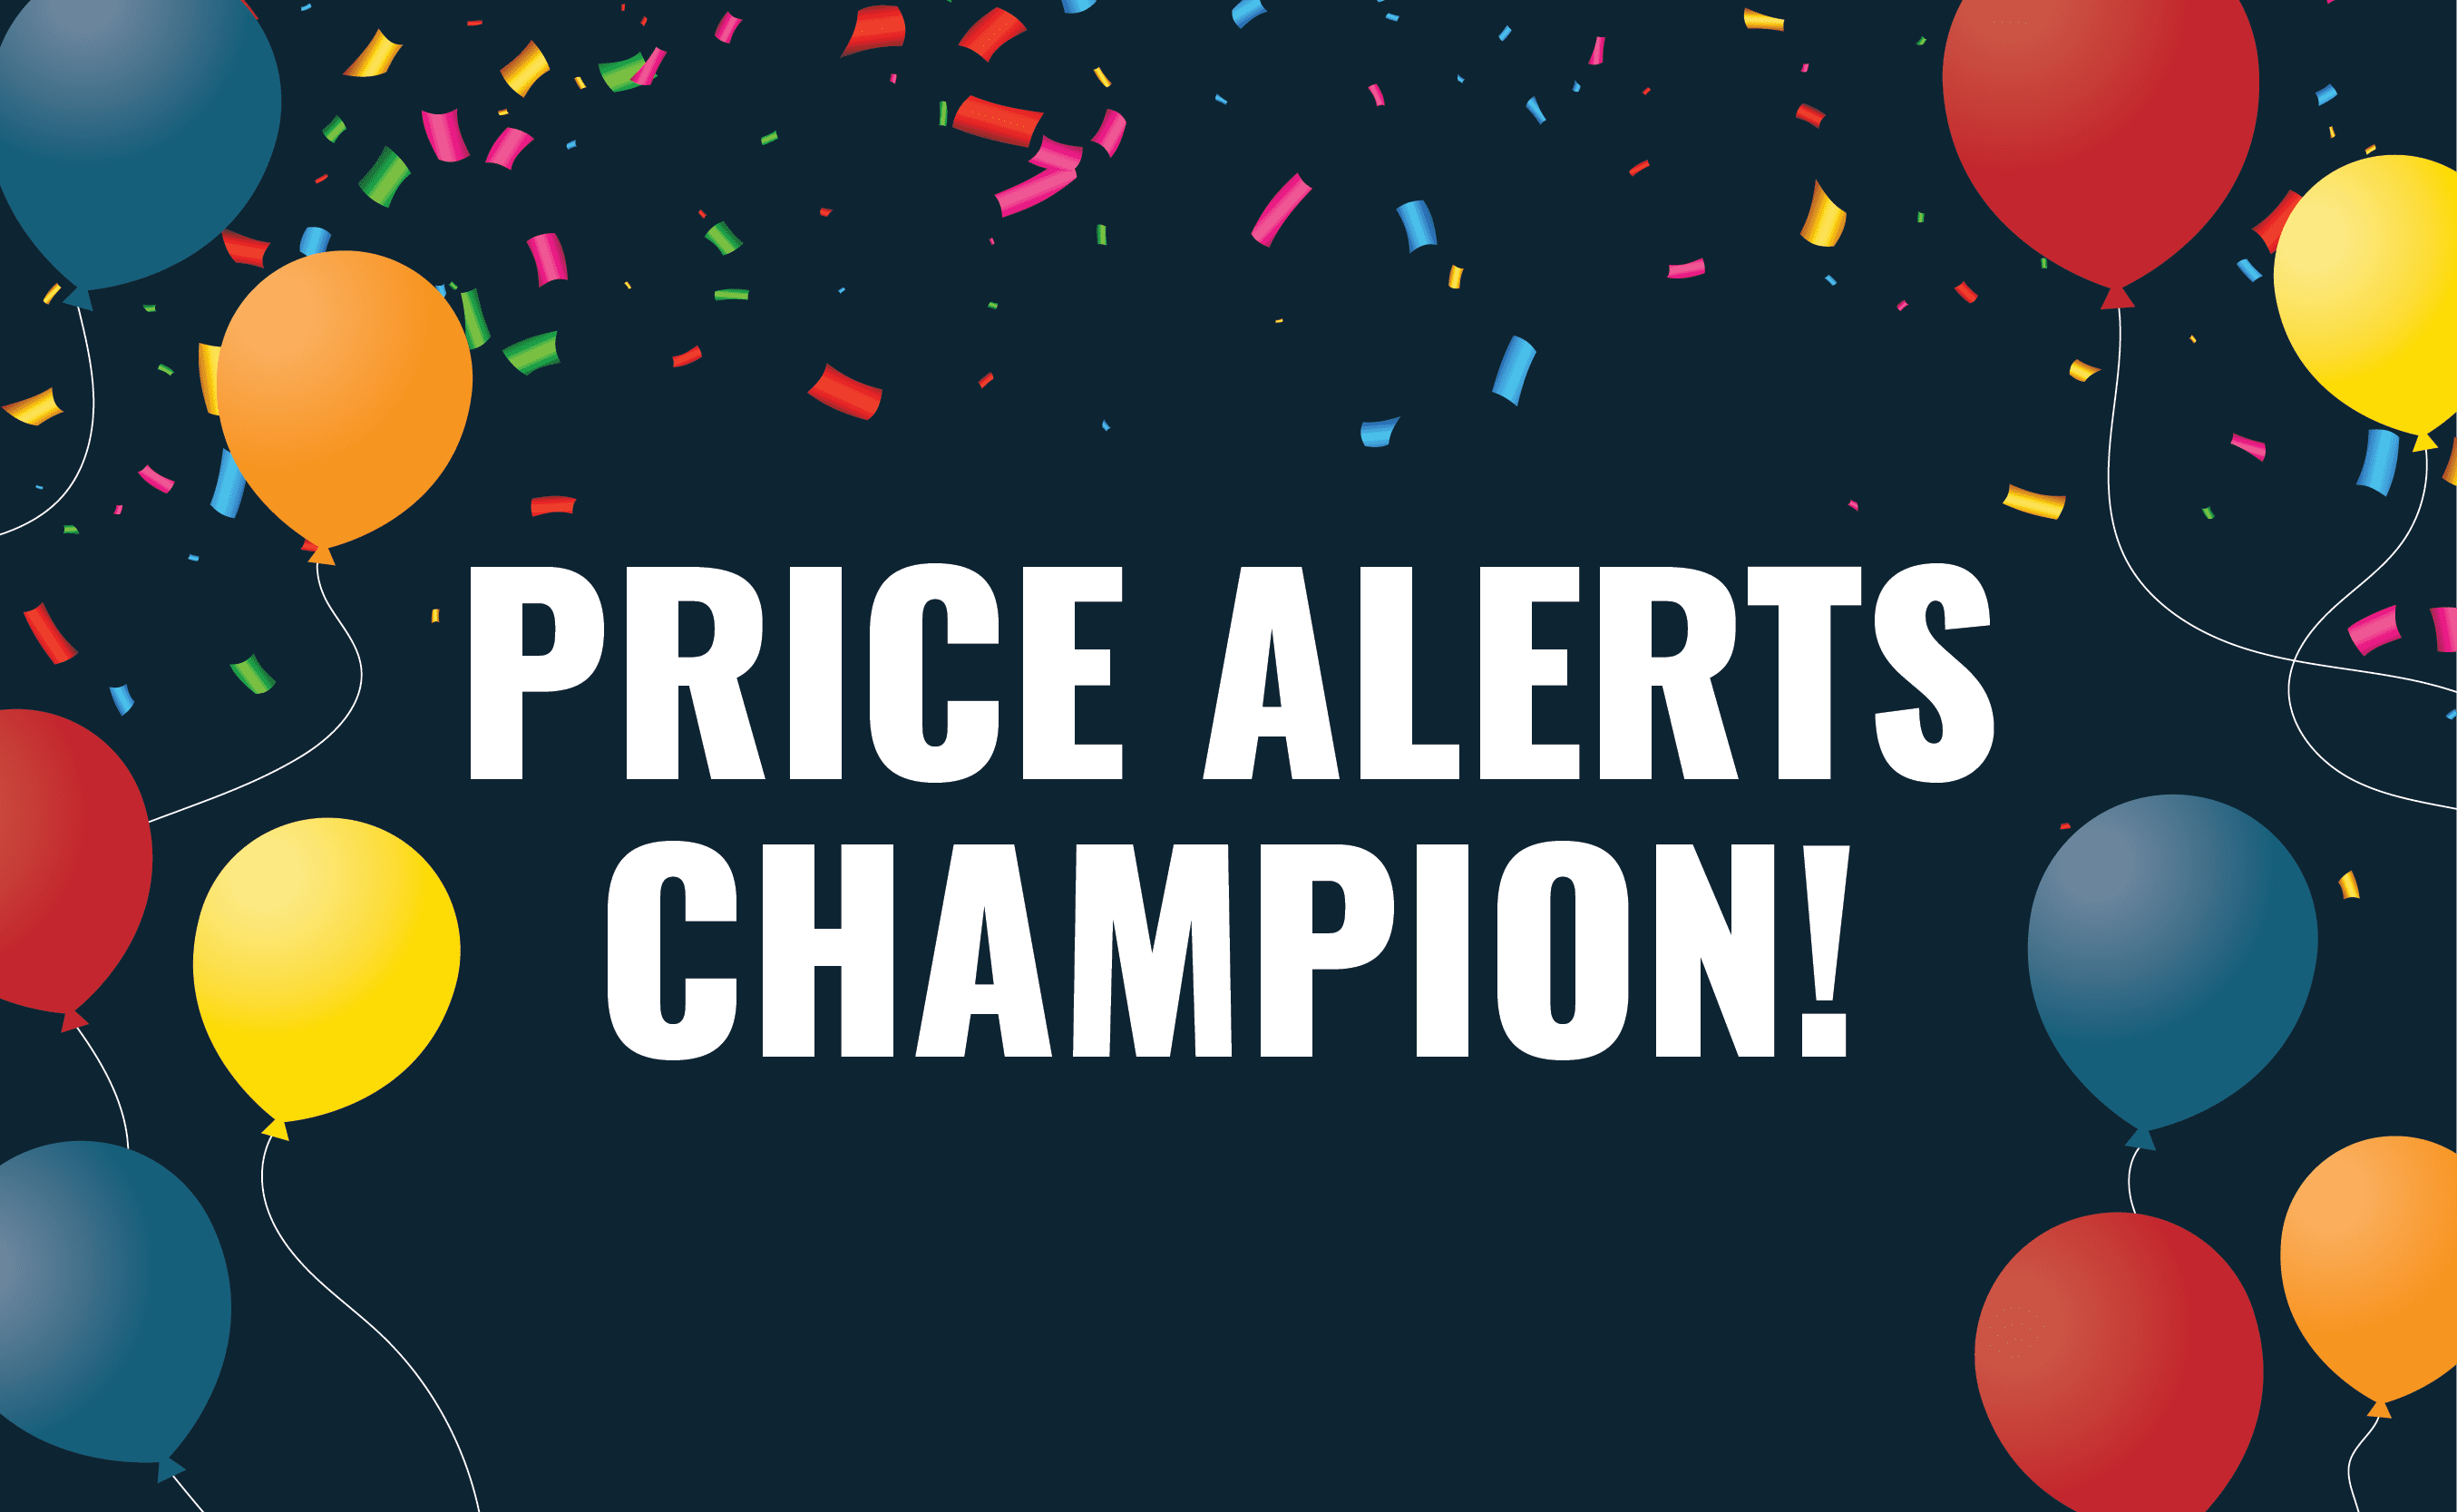 Announcing the February 2020 Test Drive Price Alerts Champs!